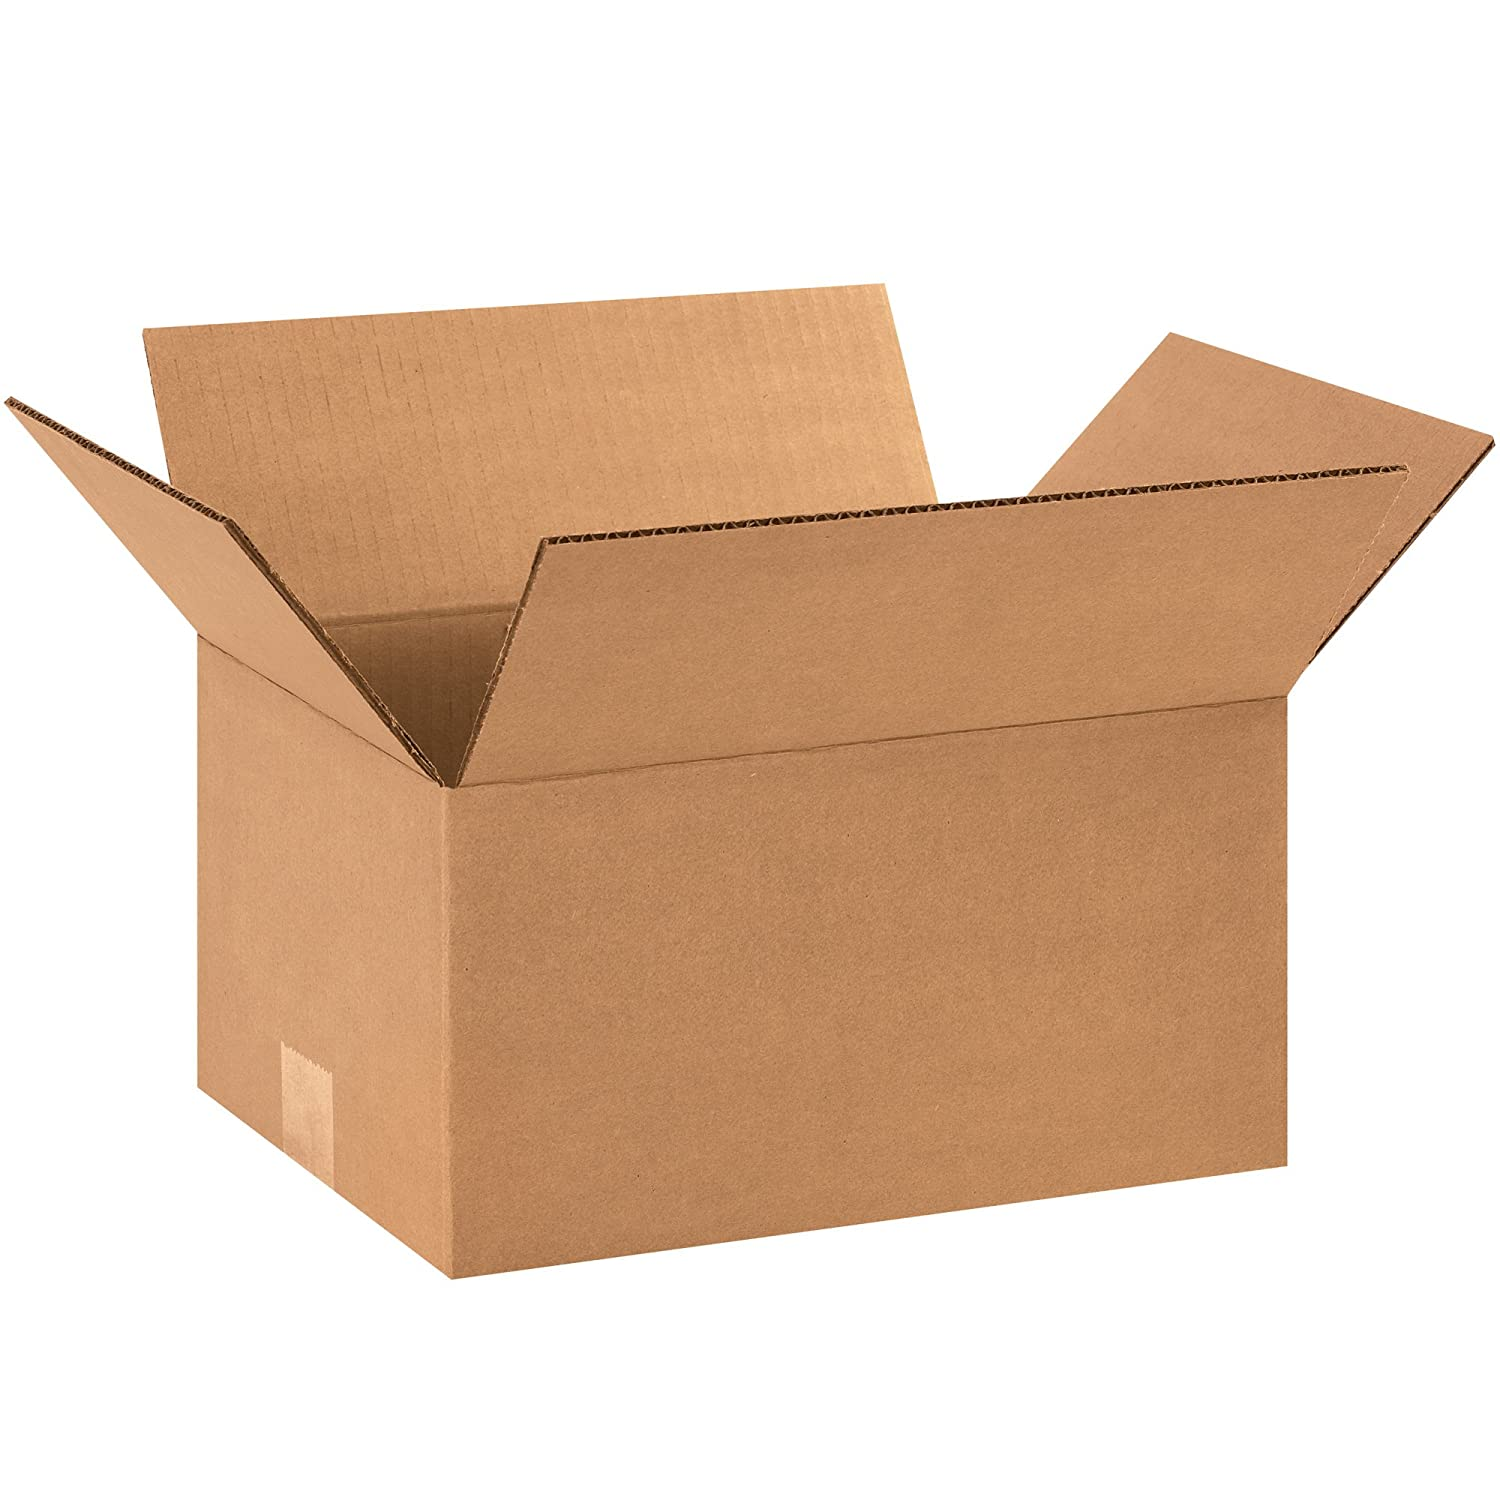 Aviditi ECT-32 200# Sale special Mail order cheap price Regular Slotted RSC 1 Corrugated Container